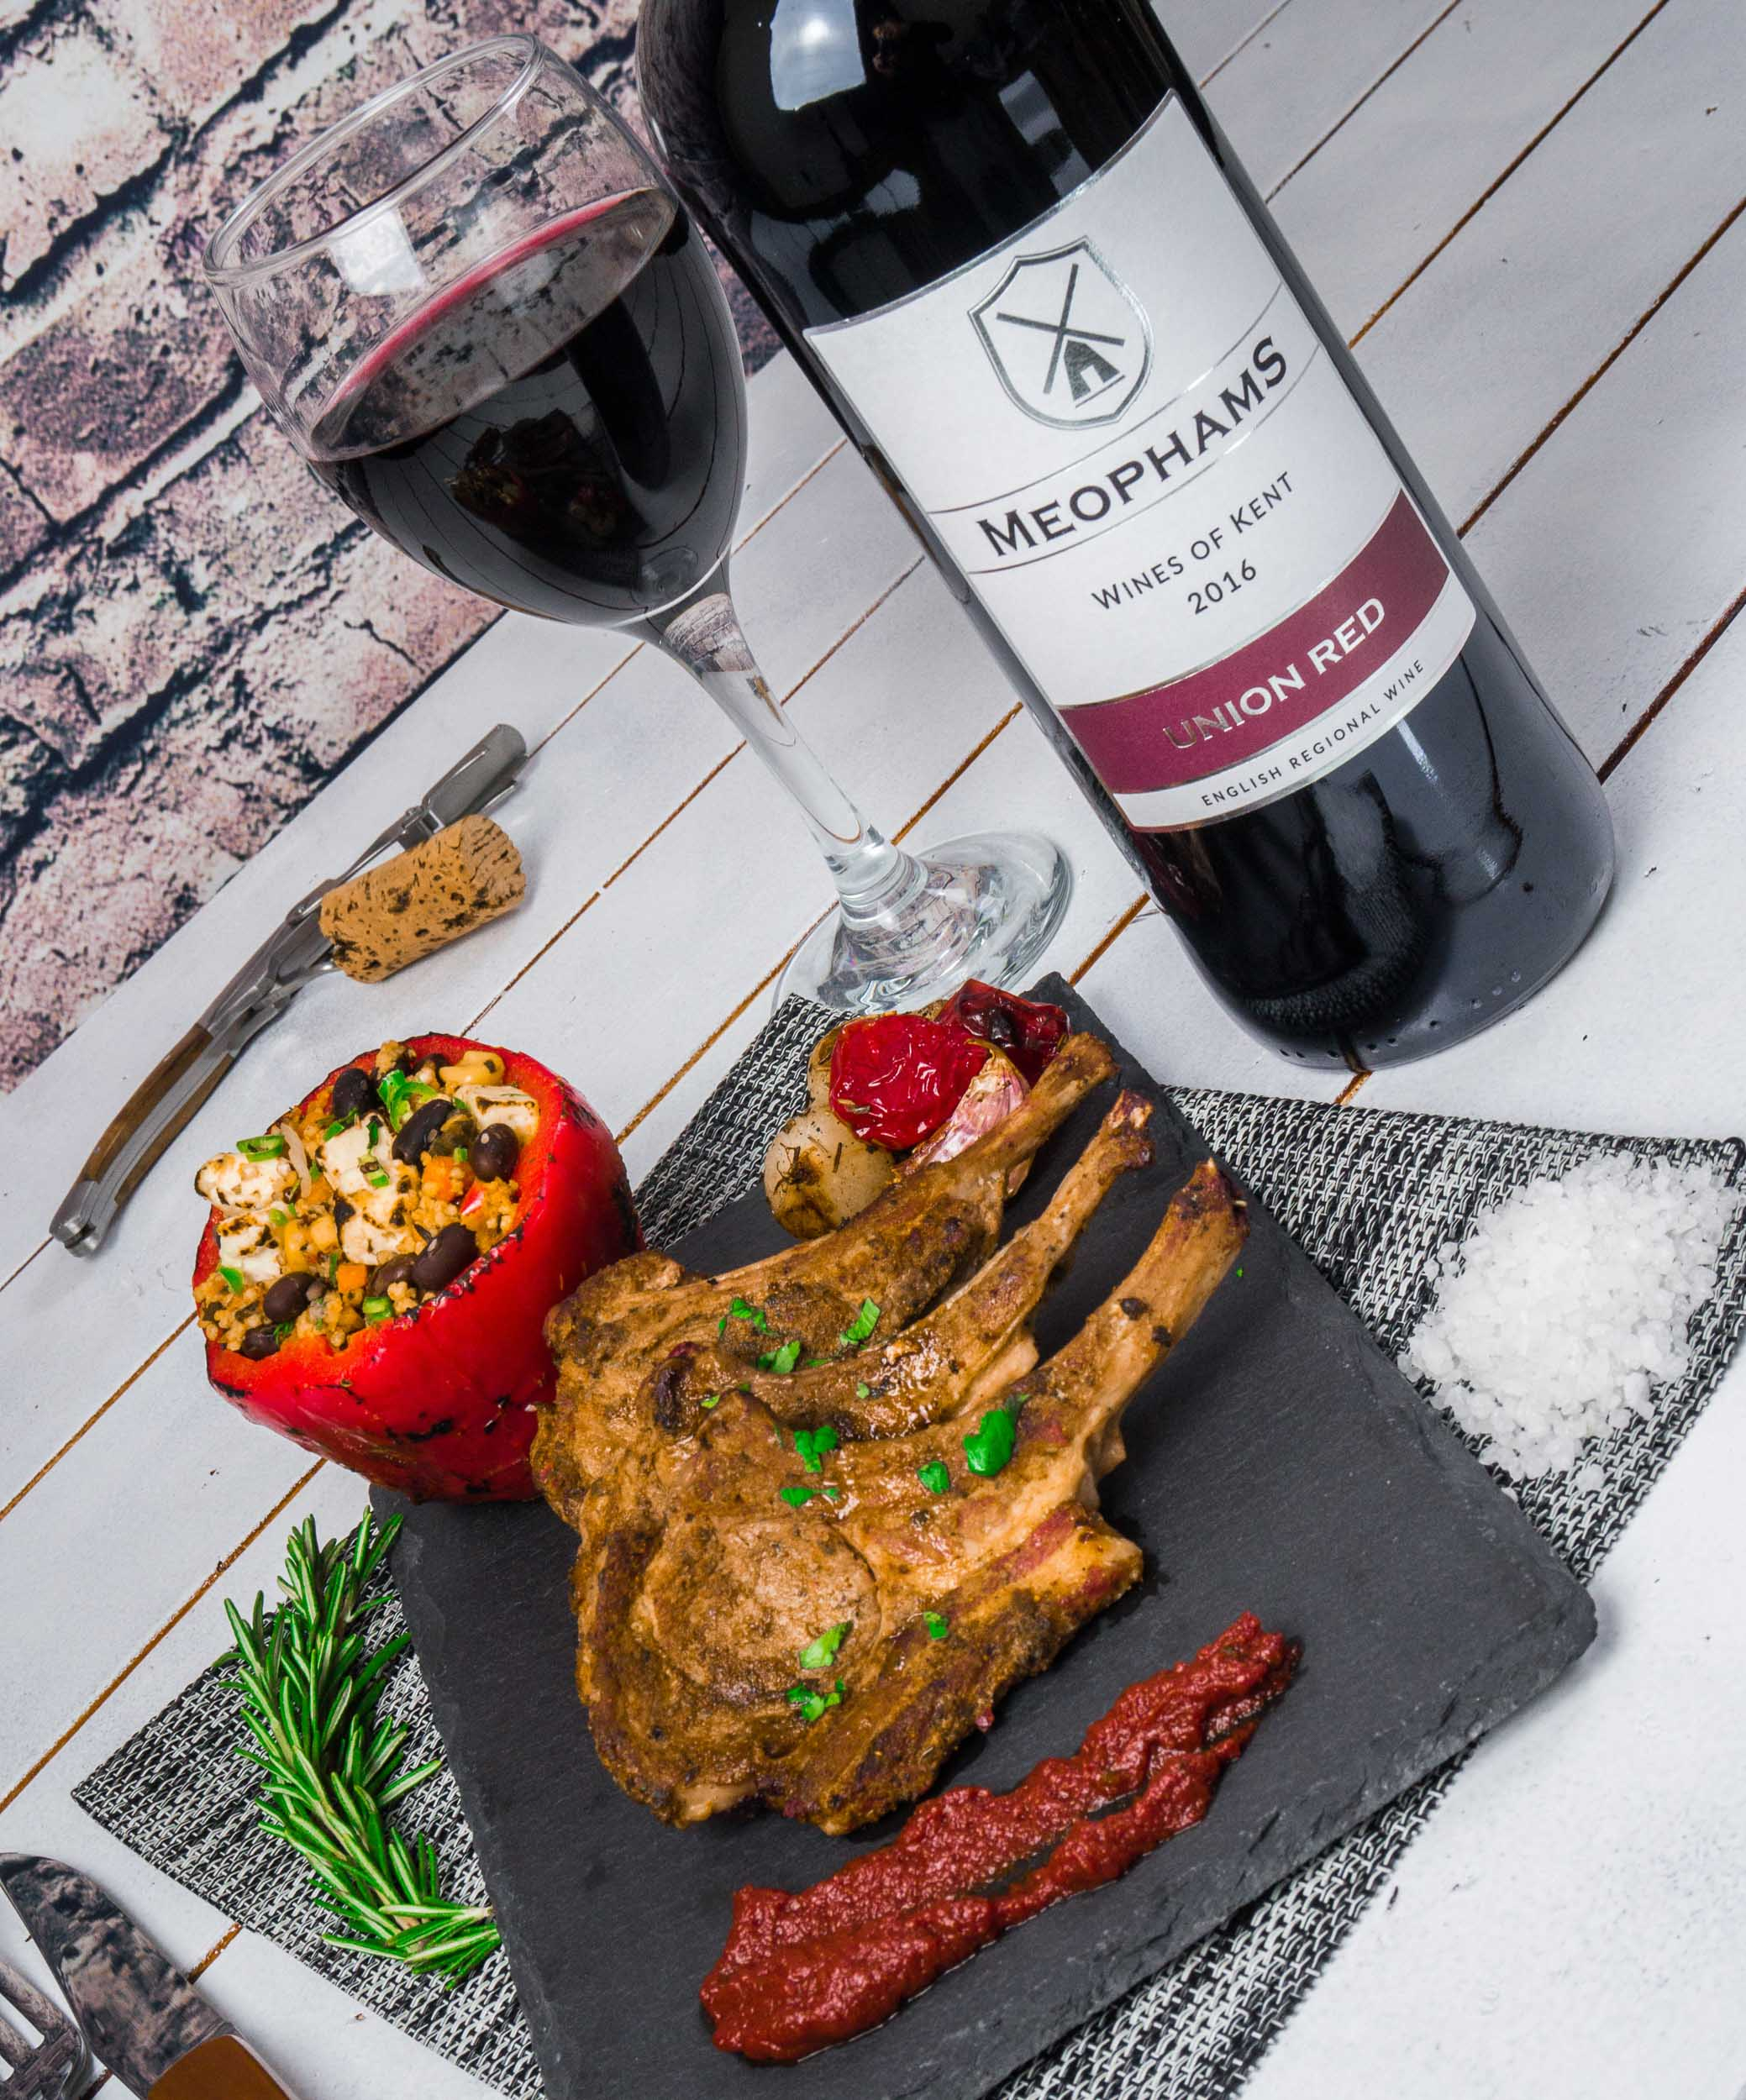 Meophams-Union-Red-Kent-English-Wine-Lamb-Chops-1